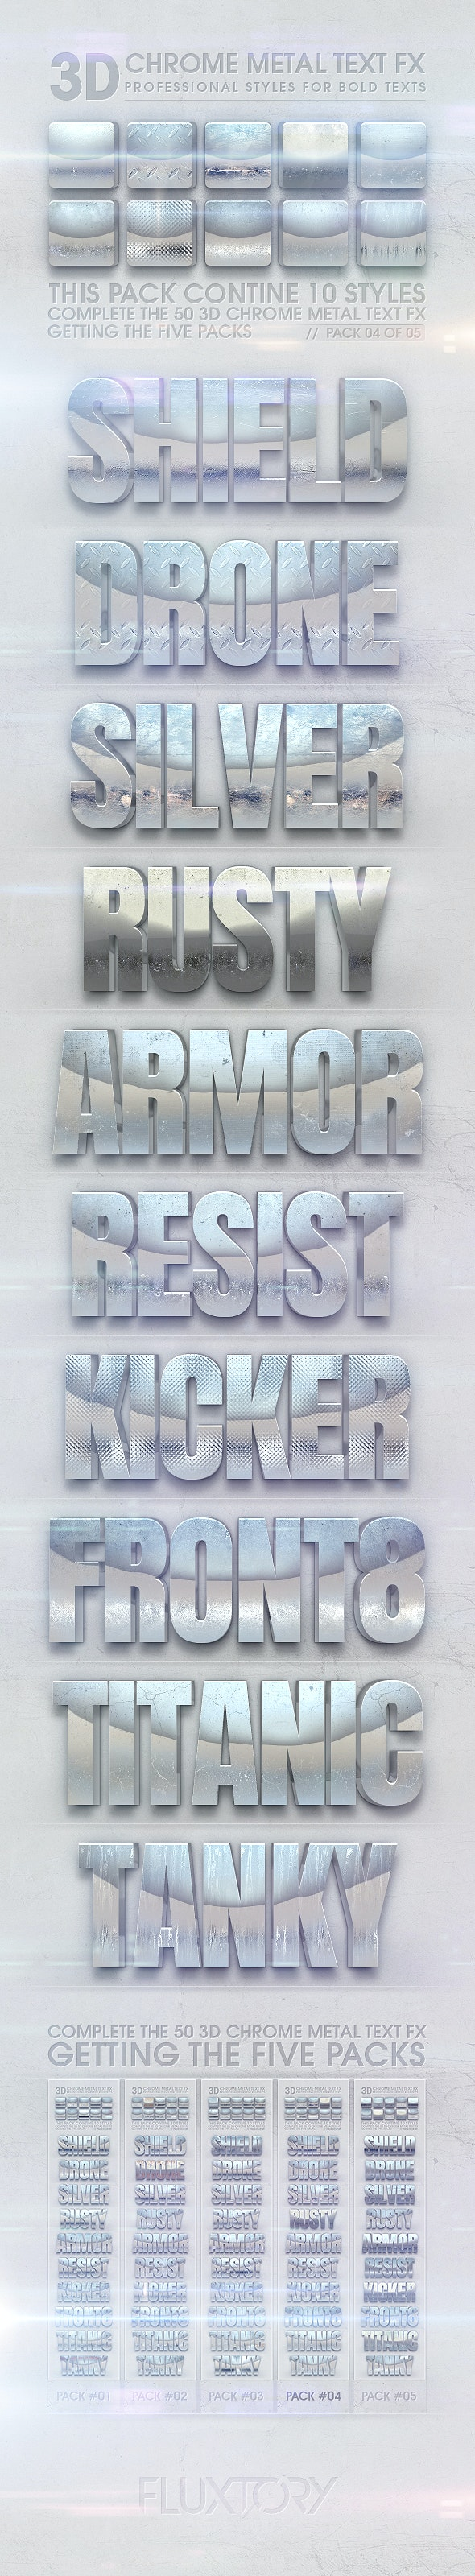 3D Chrome Metal Text FX 04 of 05 - Text Effects Styles